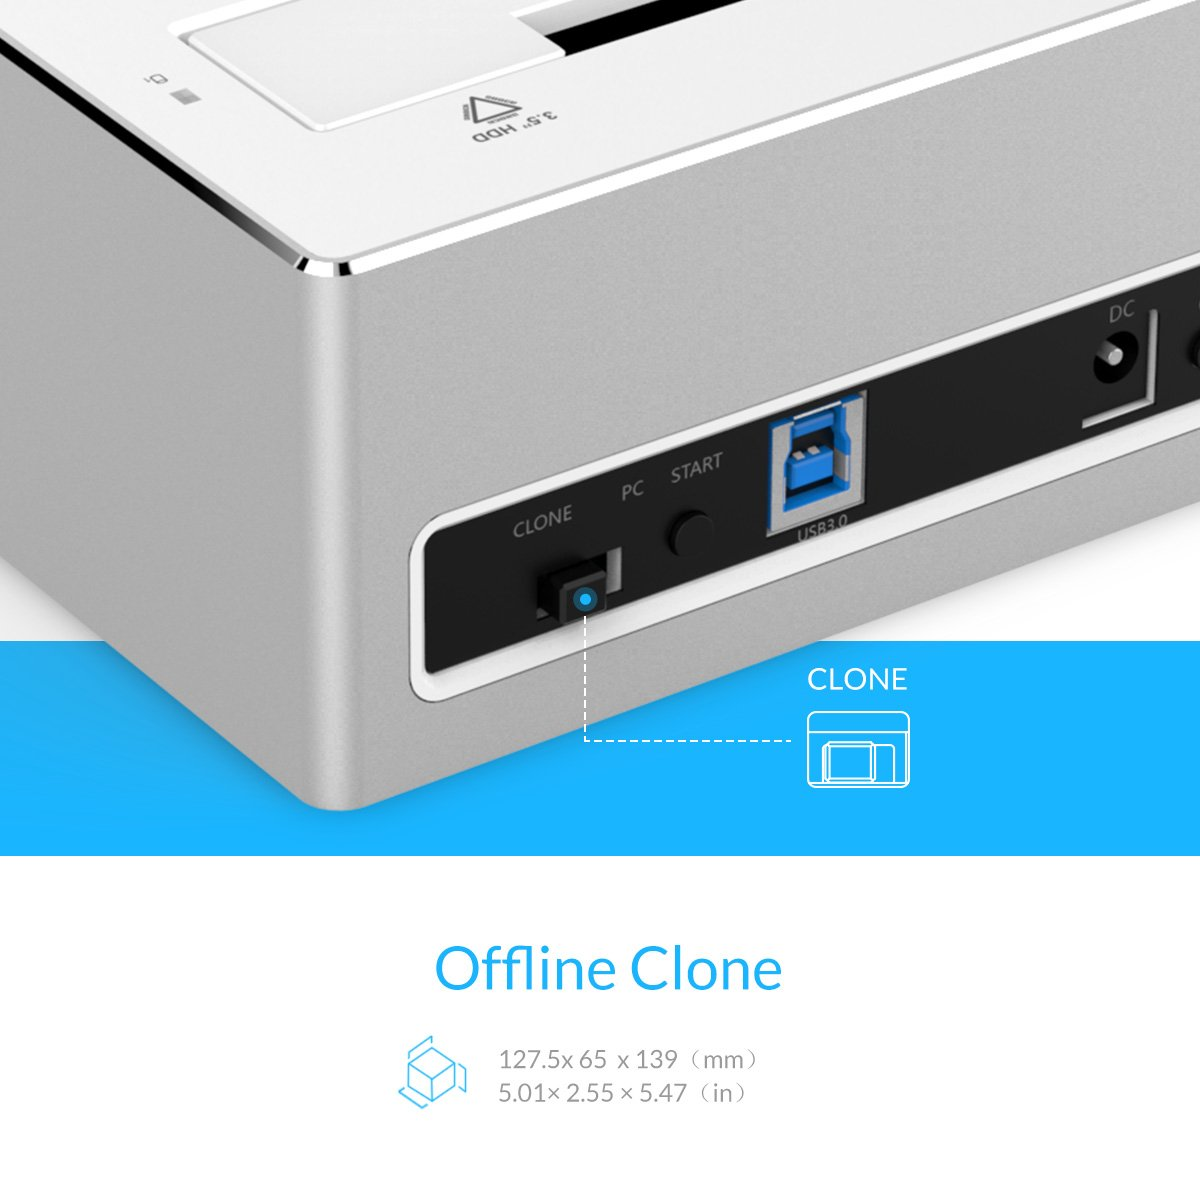 Tool-free ORICO Aluminium USB 3.0 to SATA Dual Bay Hard Drive Docking Station with Offline Clone Backup Function for 2.5 Inch /& 3.5 Inch HDD SSD SATA I//II//III Supports UASP and 2 x 8 TB